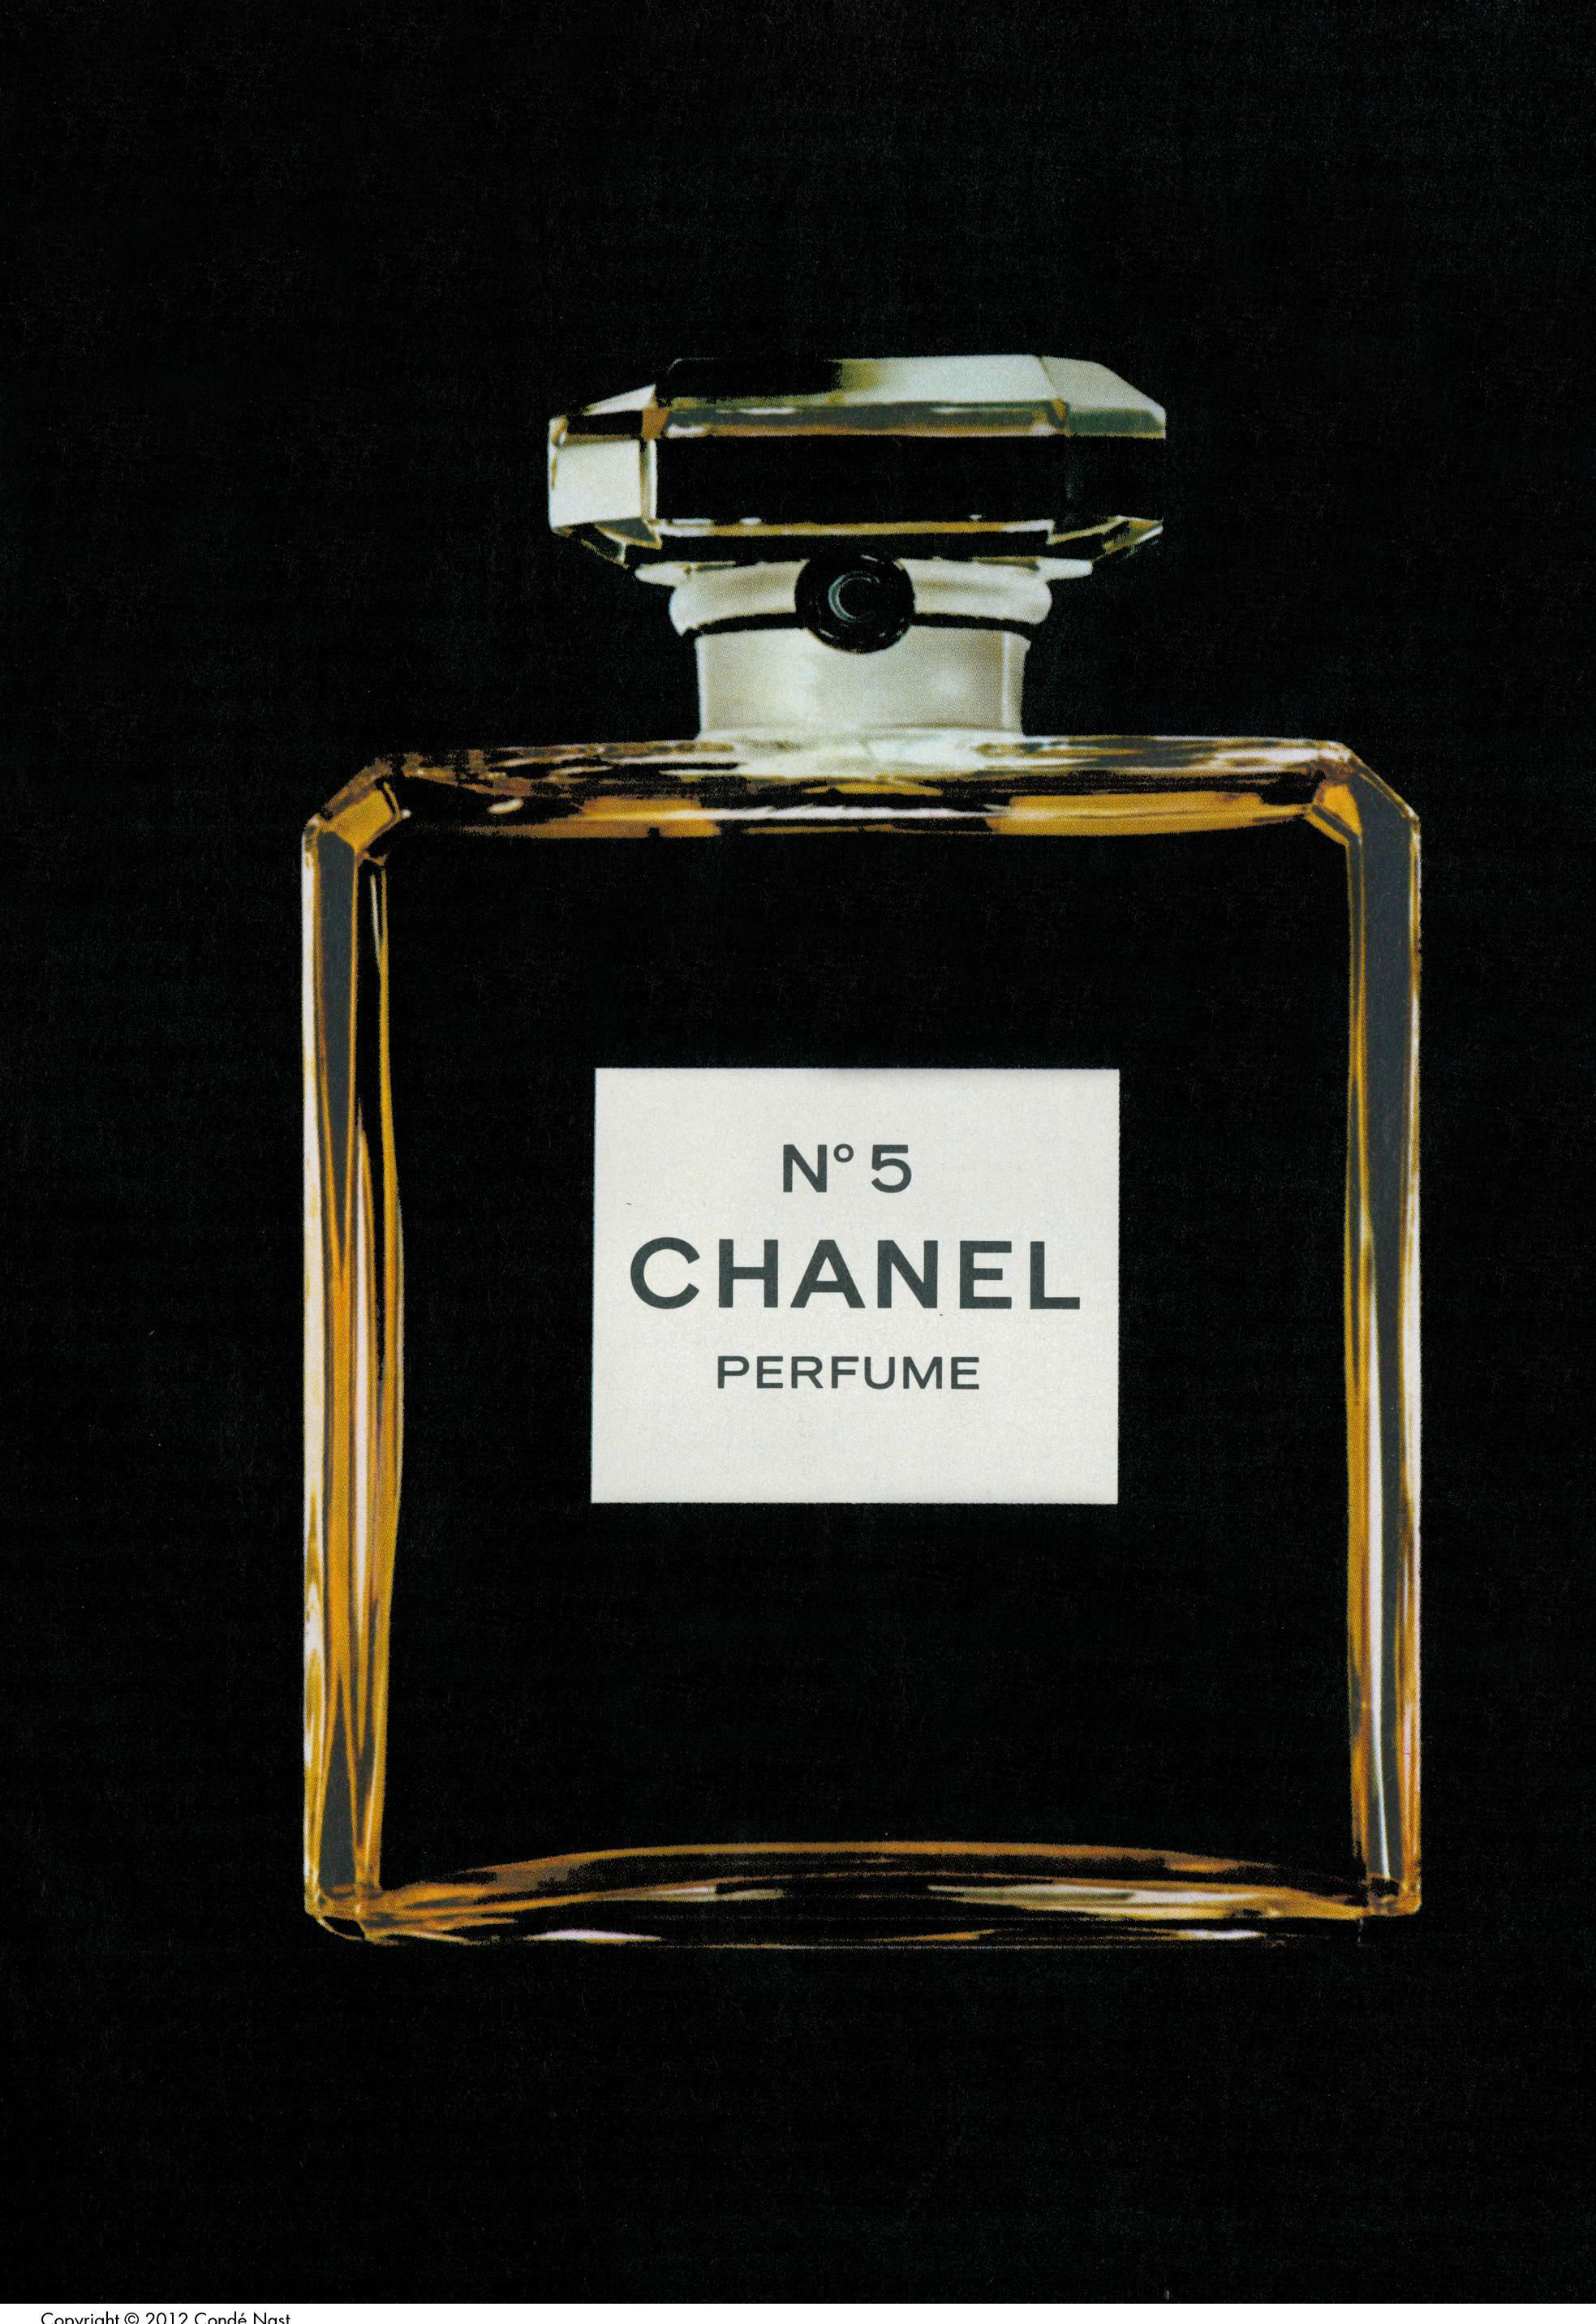 the gallery for chanel no 5 perfume logo. Black Bedroom Furniture Sets. Home Design Ideas